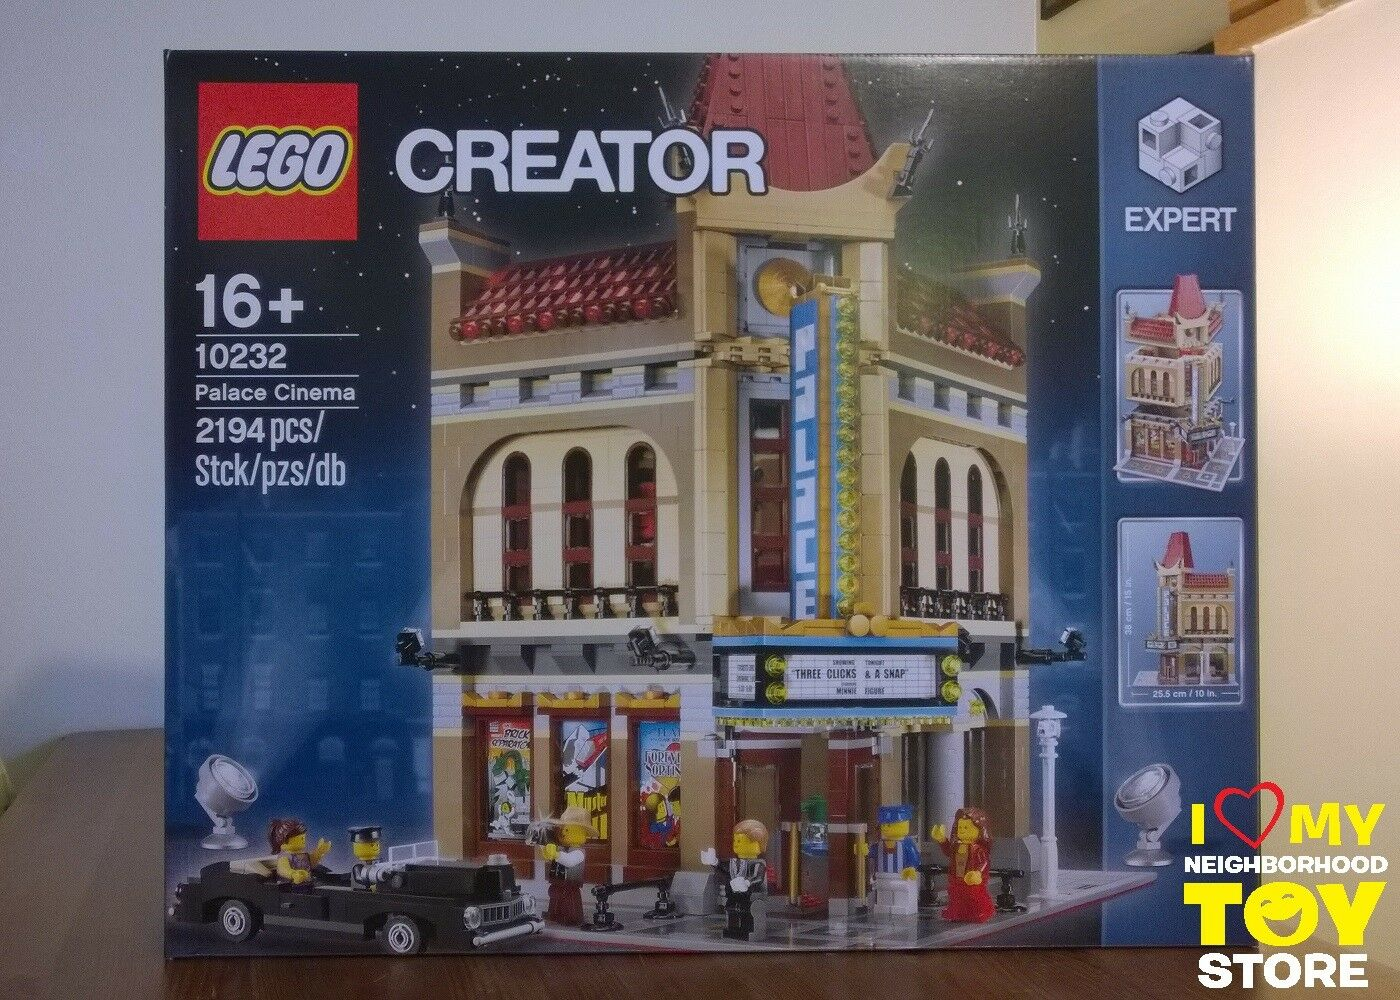 RETIrouge - LEGO 10232 CREATOR EXPERT PALACE CINEMA (2013) - MISB